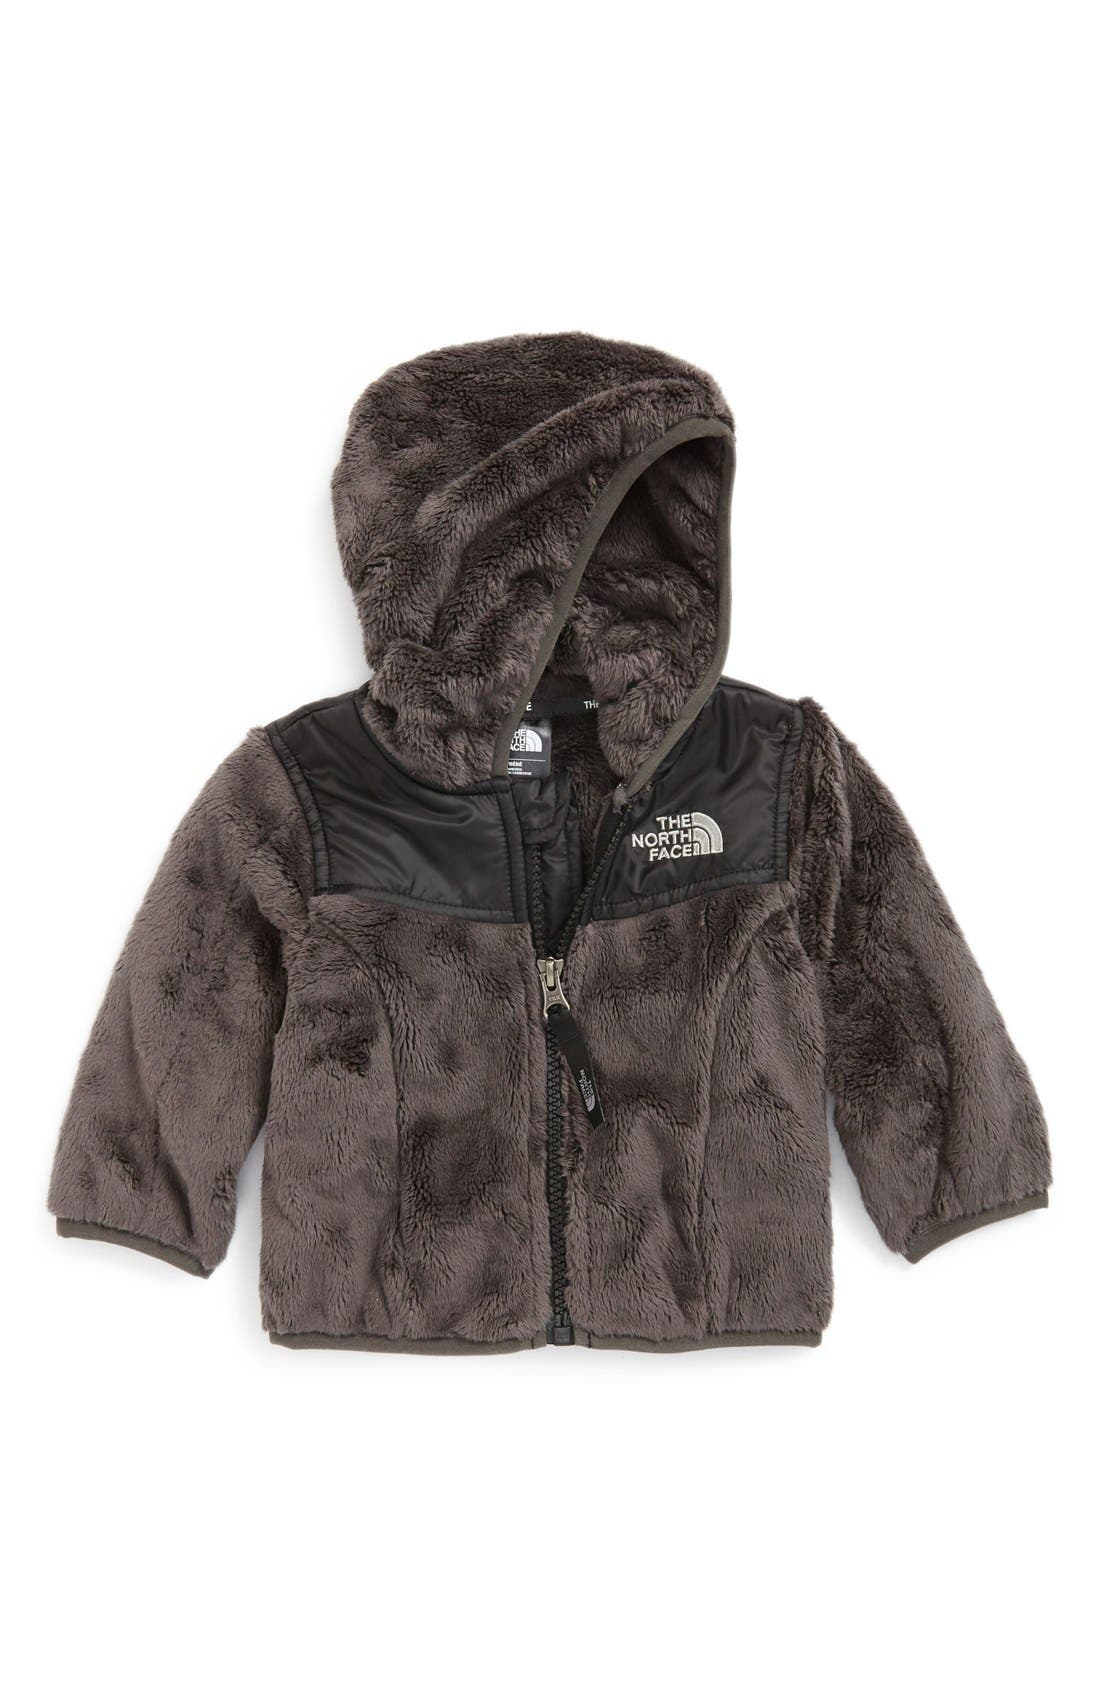 Alternate Image 1 Selected - The North Face 'Oso' Fleece Hoodie (Baby)